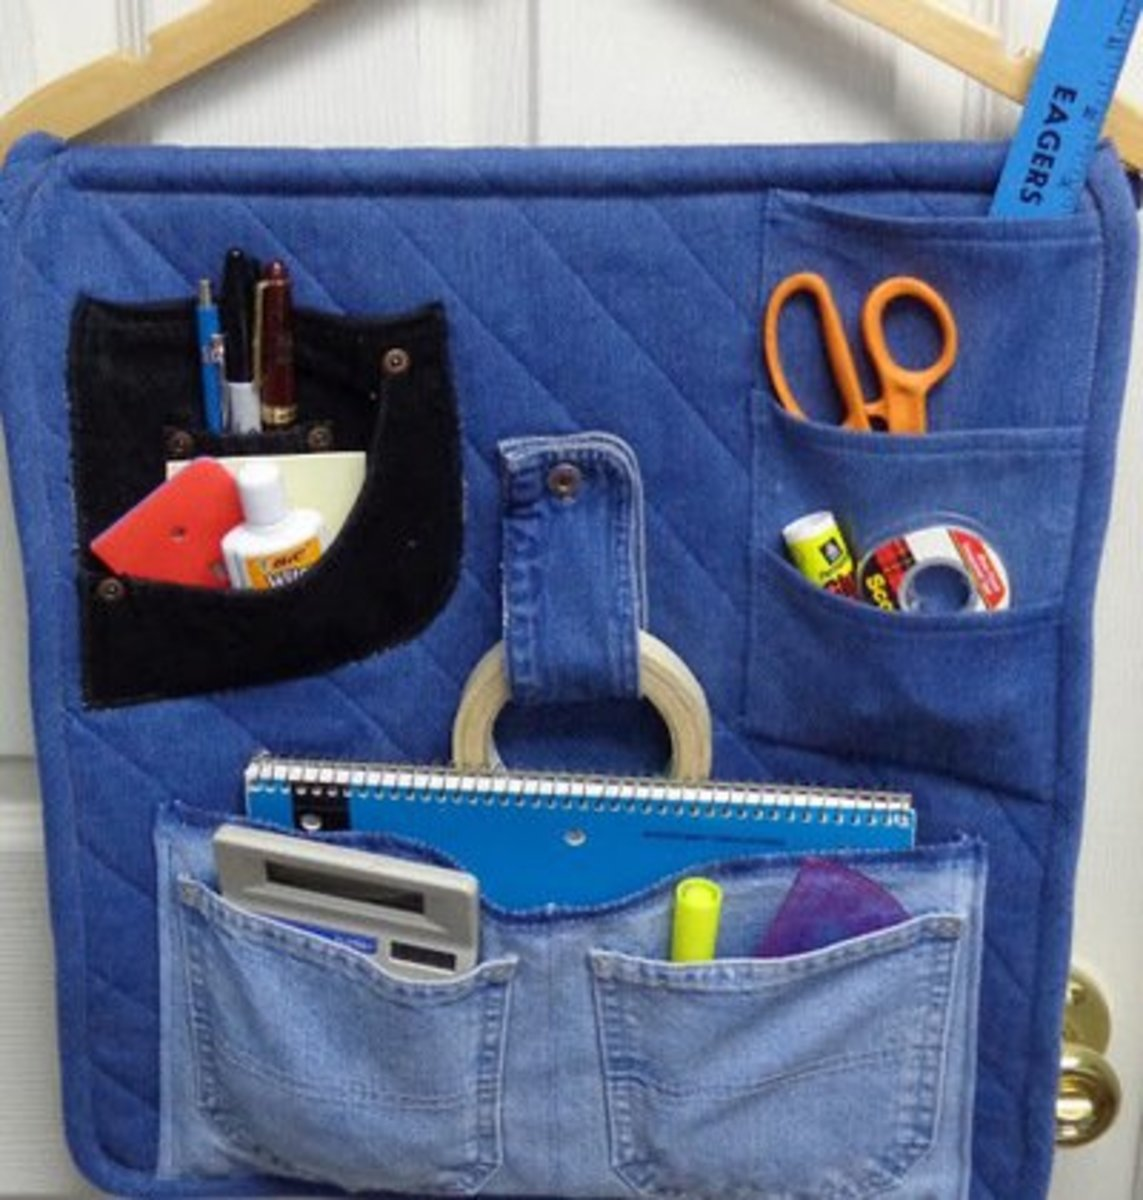 bef5b5a4ae Denim Basket. This would be a great gift to make for a high school graduate  to take along to college. So pretty and useful. The instructions for this  ...